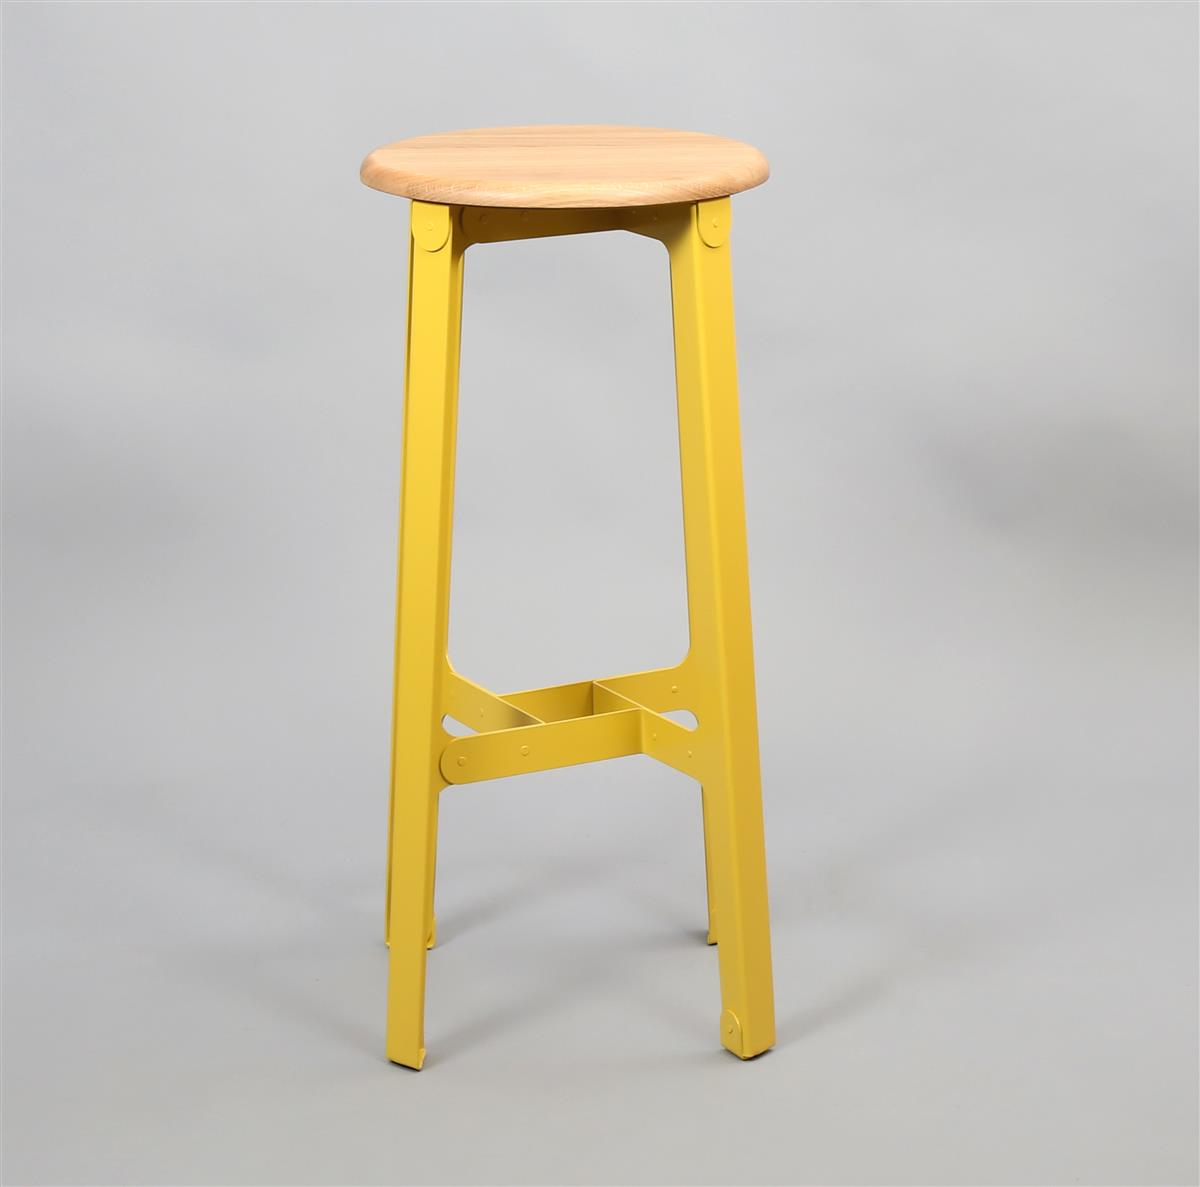 Construct Bar Stool - Oak & Sulphur Yellow